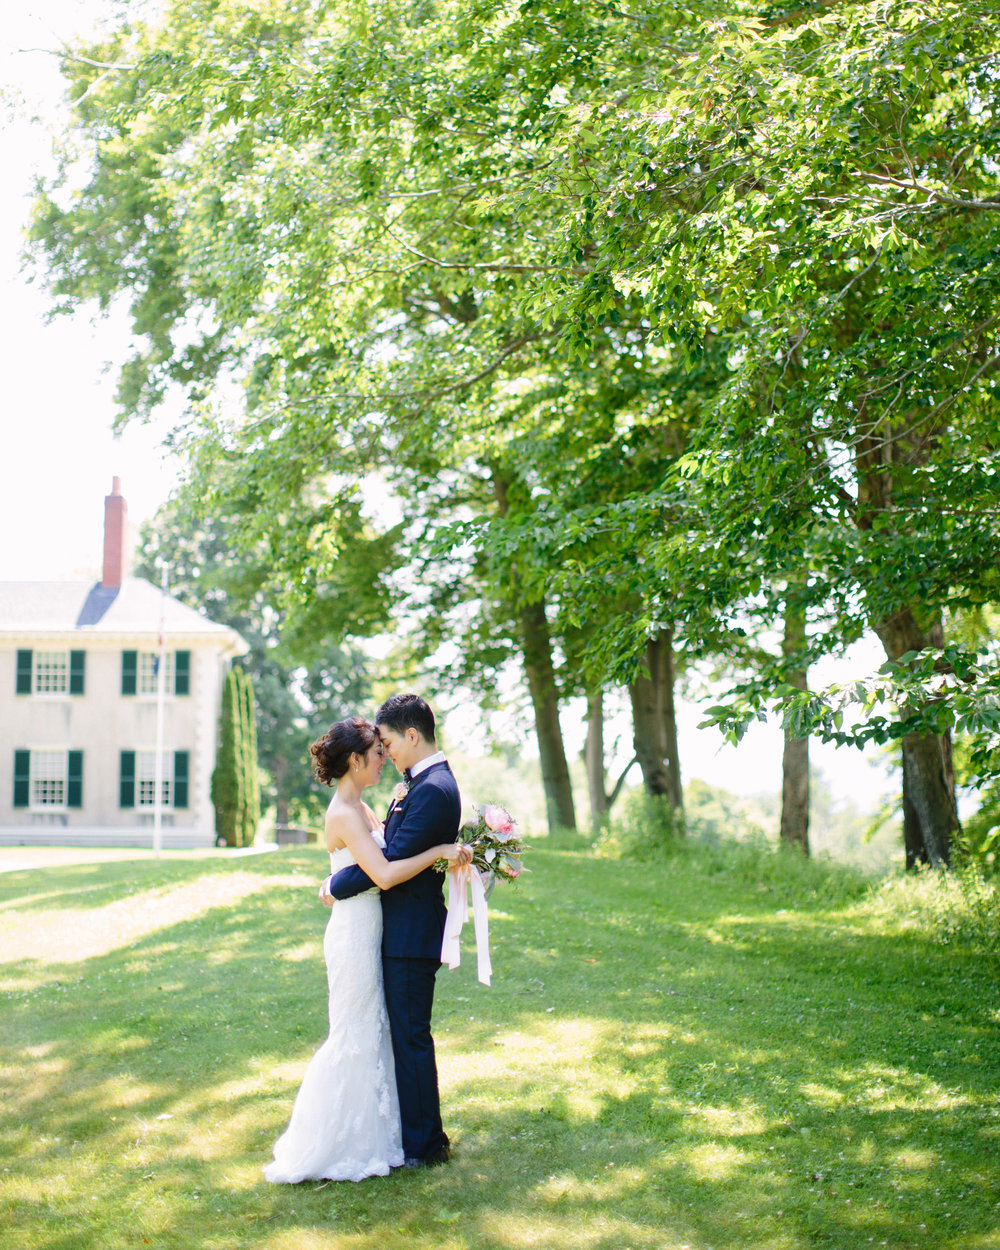 hildene_wedding_37.jpg